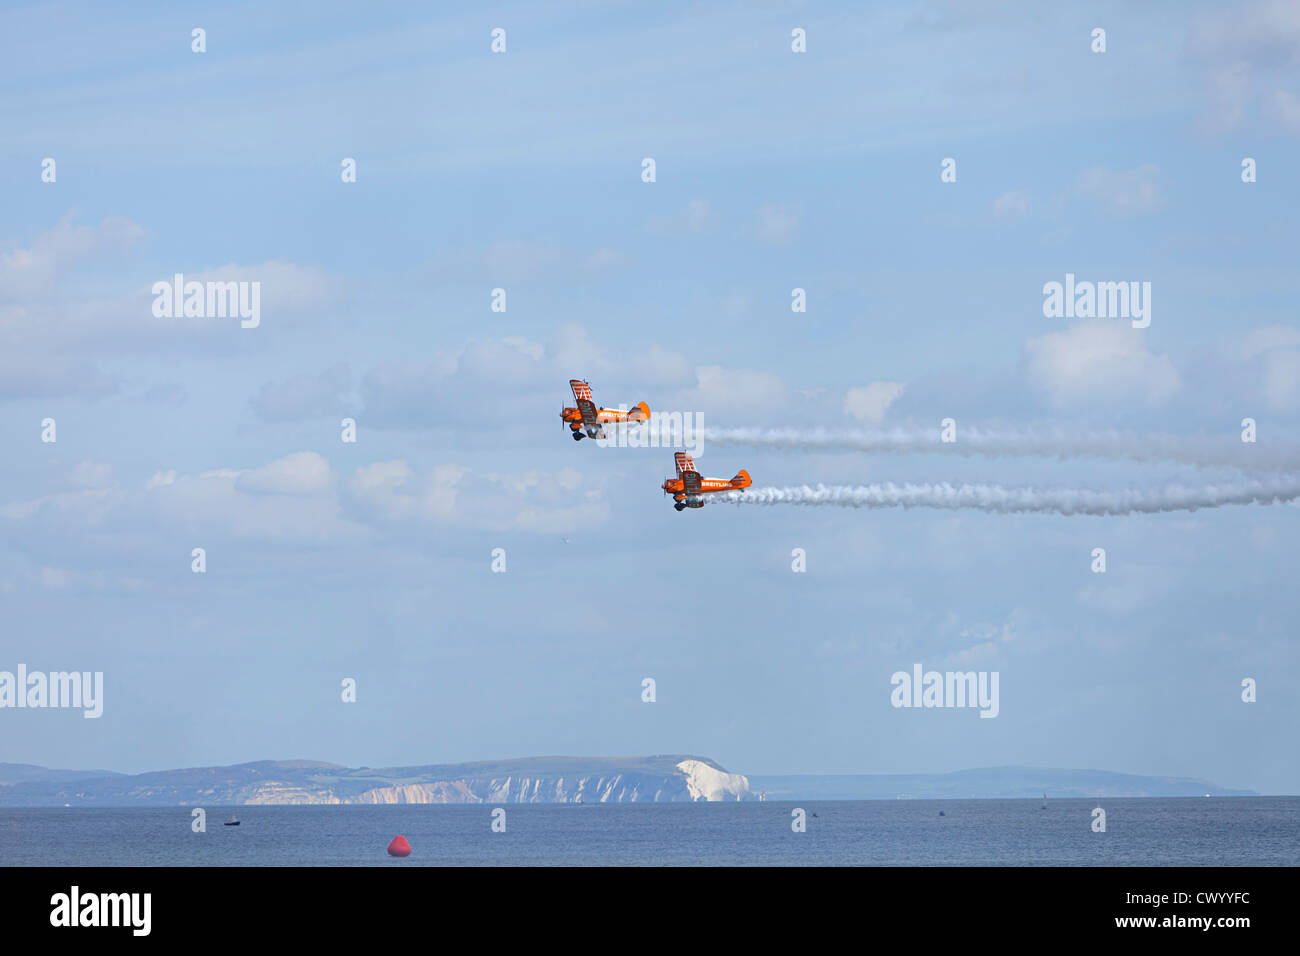 Breitling Wingwalkers, Boeing Super Stearman airplane model 75 bi plane at Bournemouth air show 2012 - Stock Image